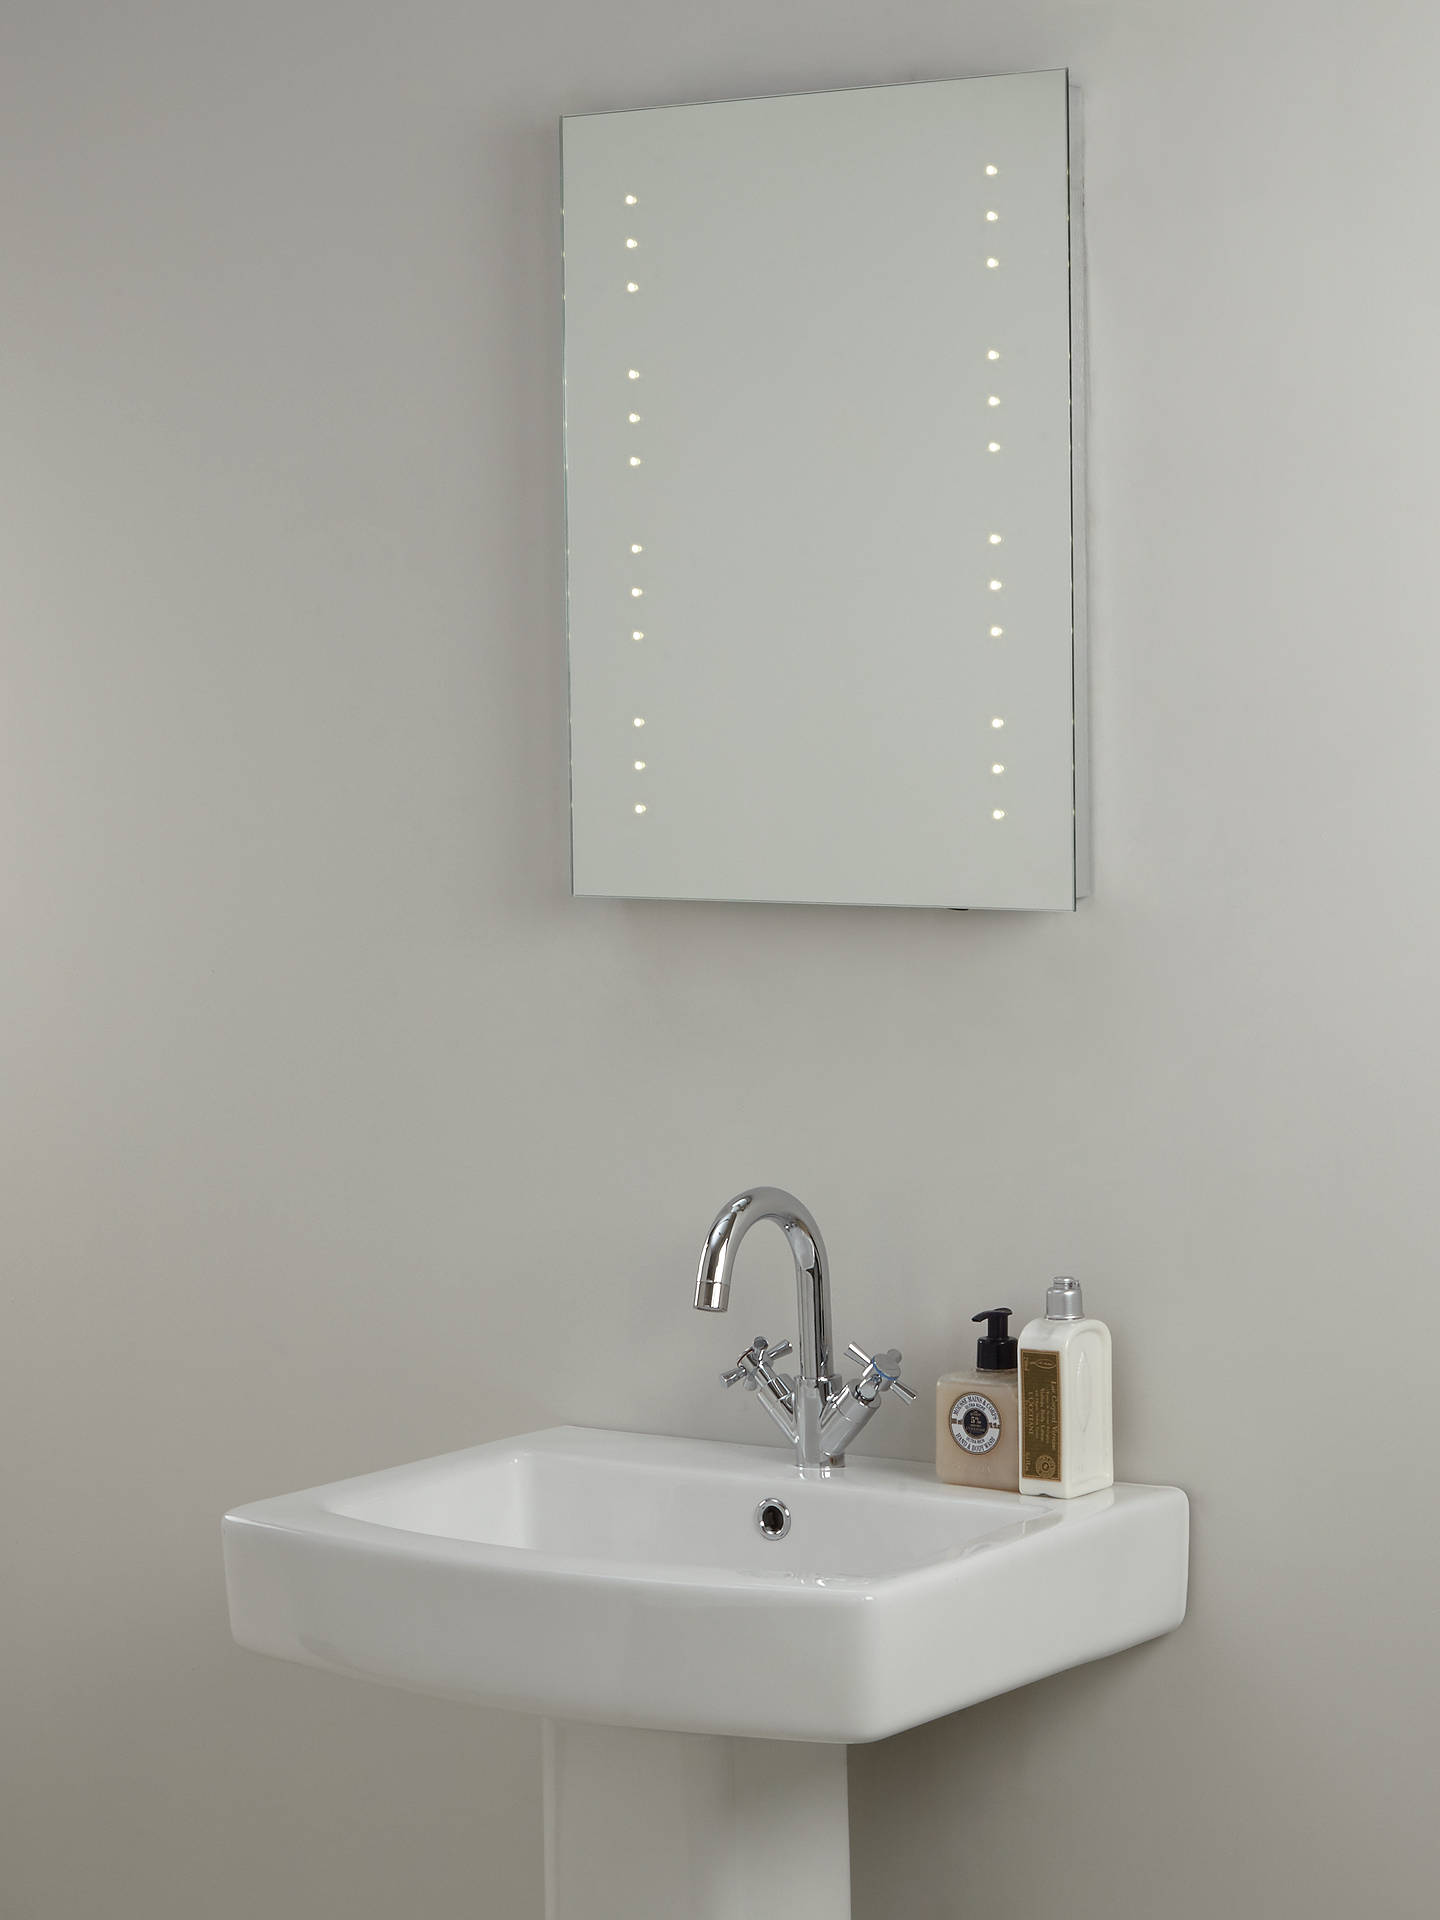 john lewis partners led starlight illuminated bathroom. Black Bedroom Furniture Sets. Home Design Ideas